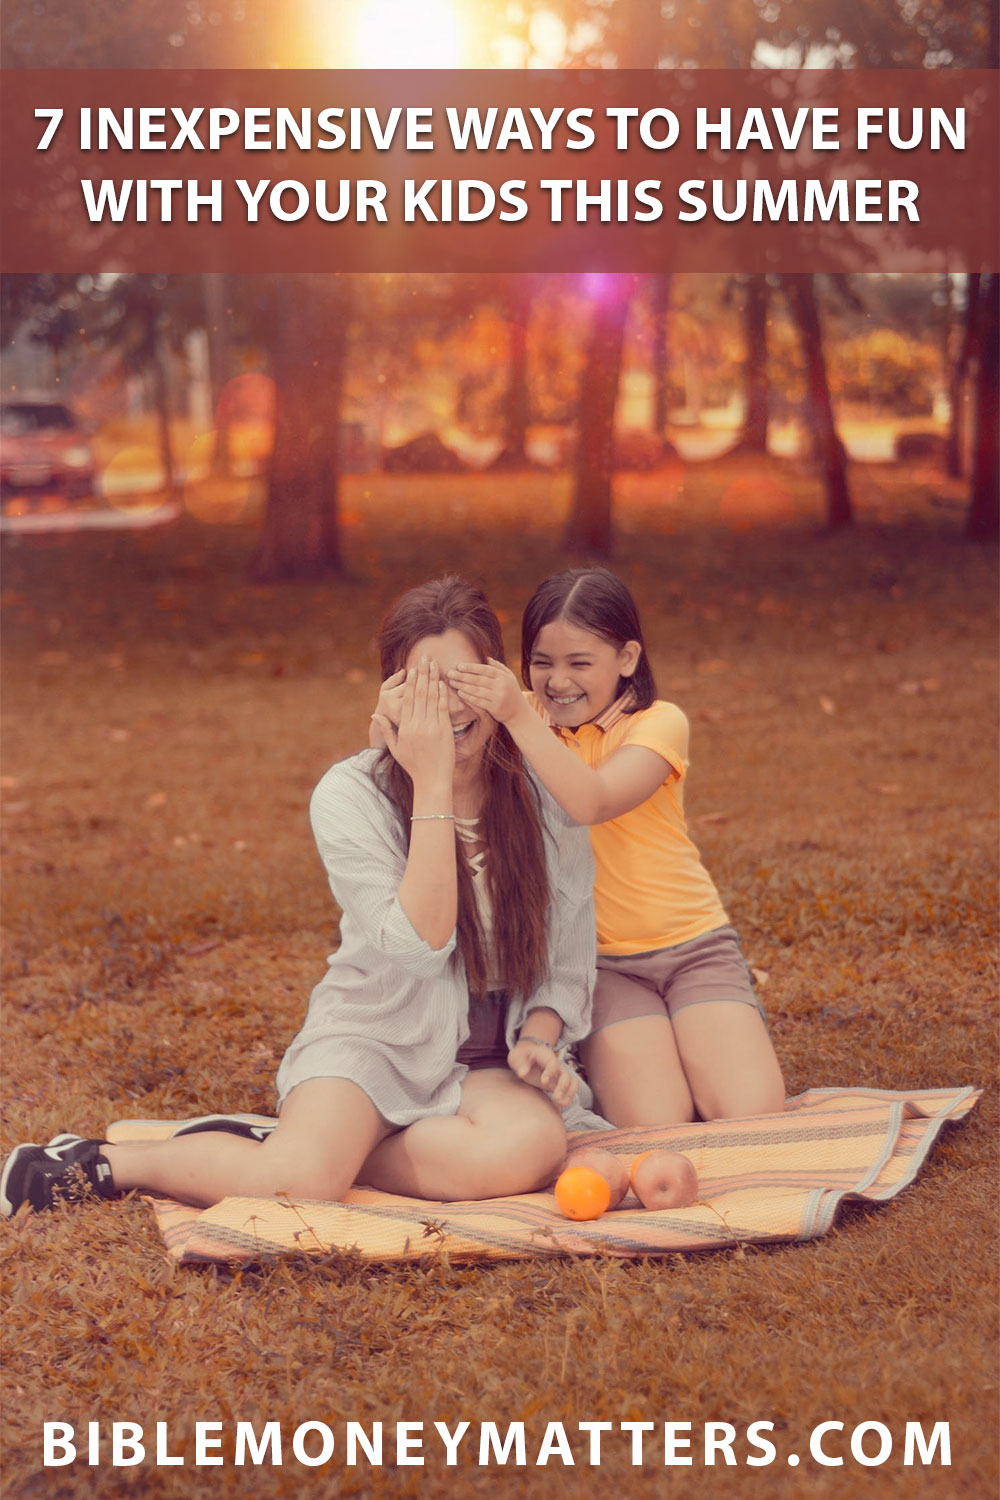 7 Inexpensive Ways To Have Fun With Your Kids This Summer